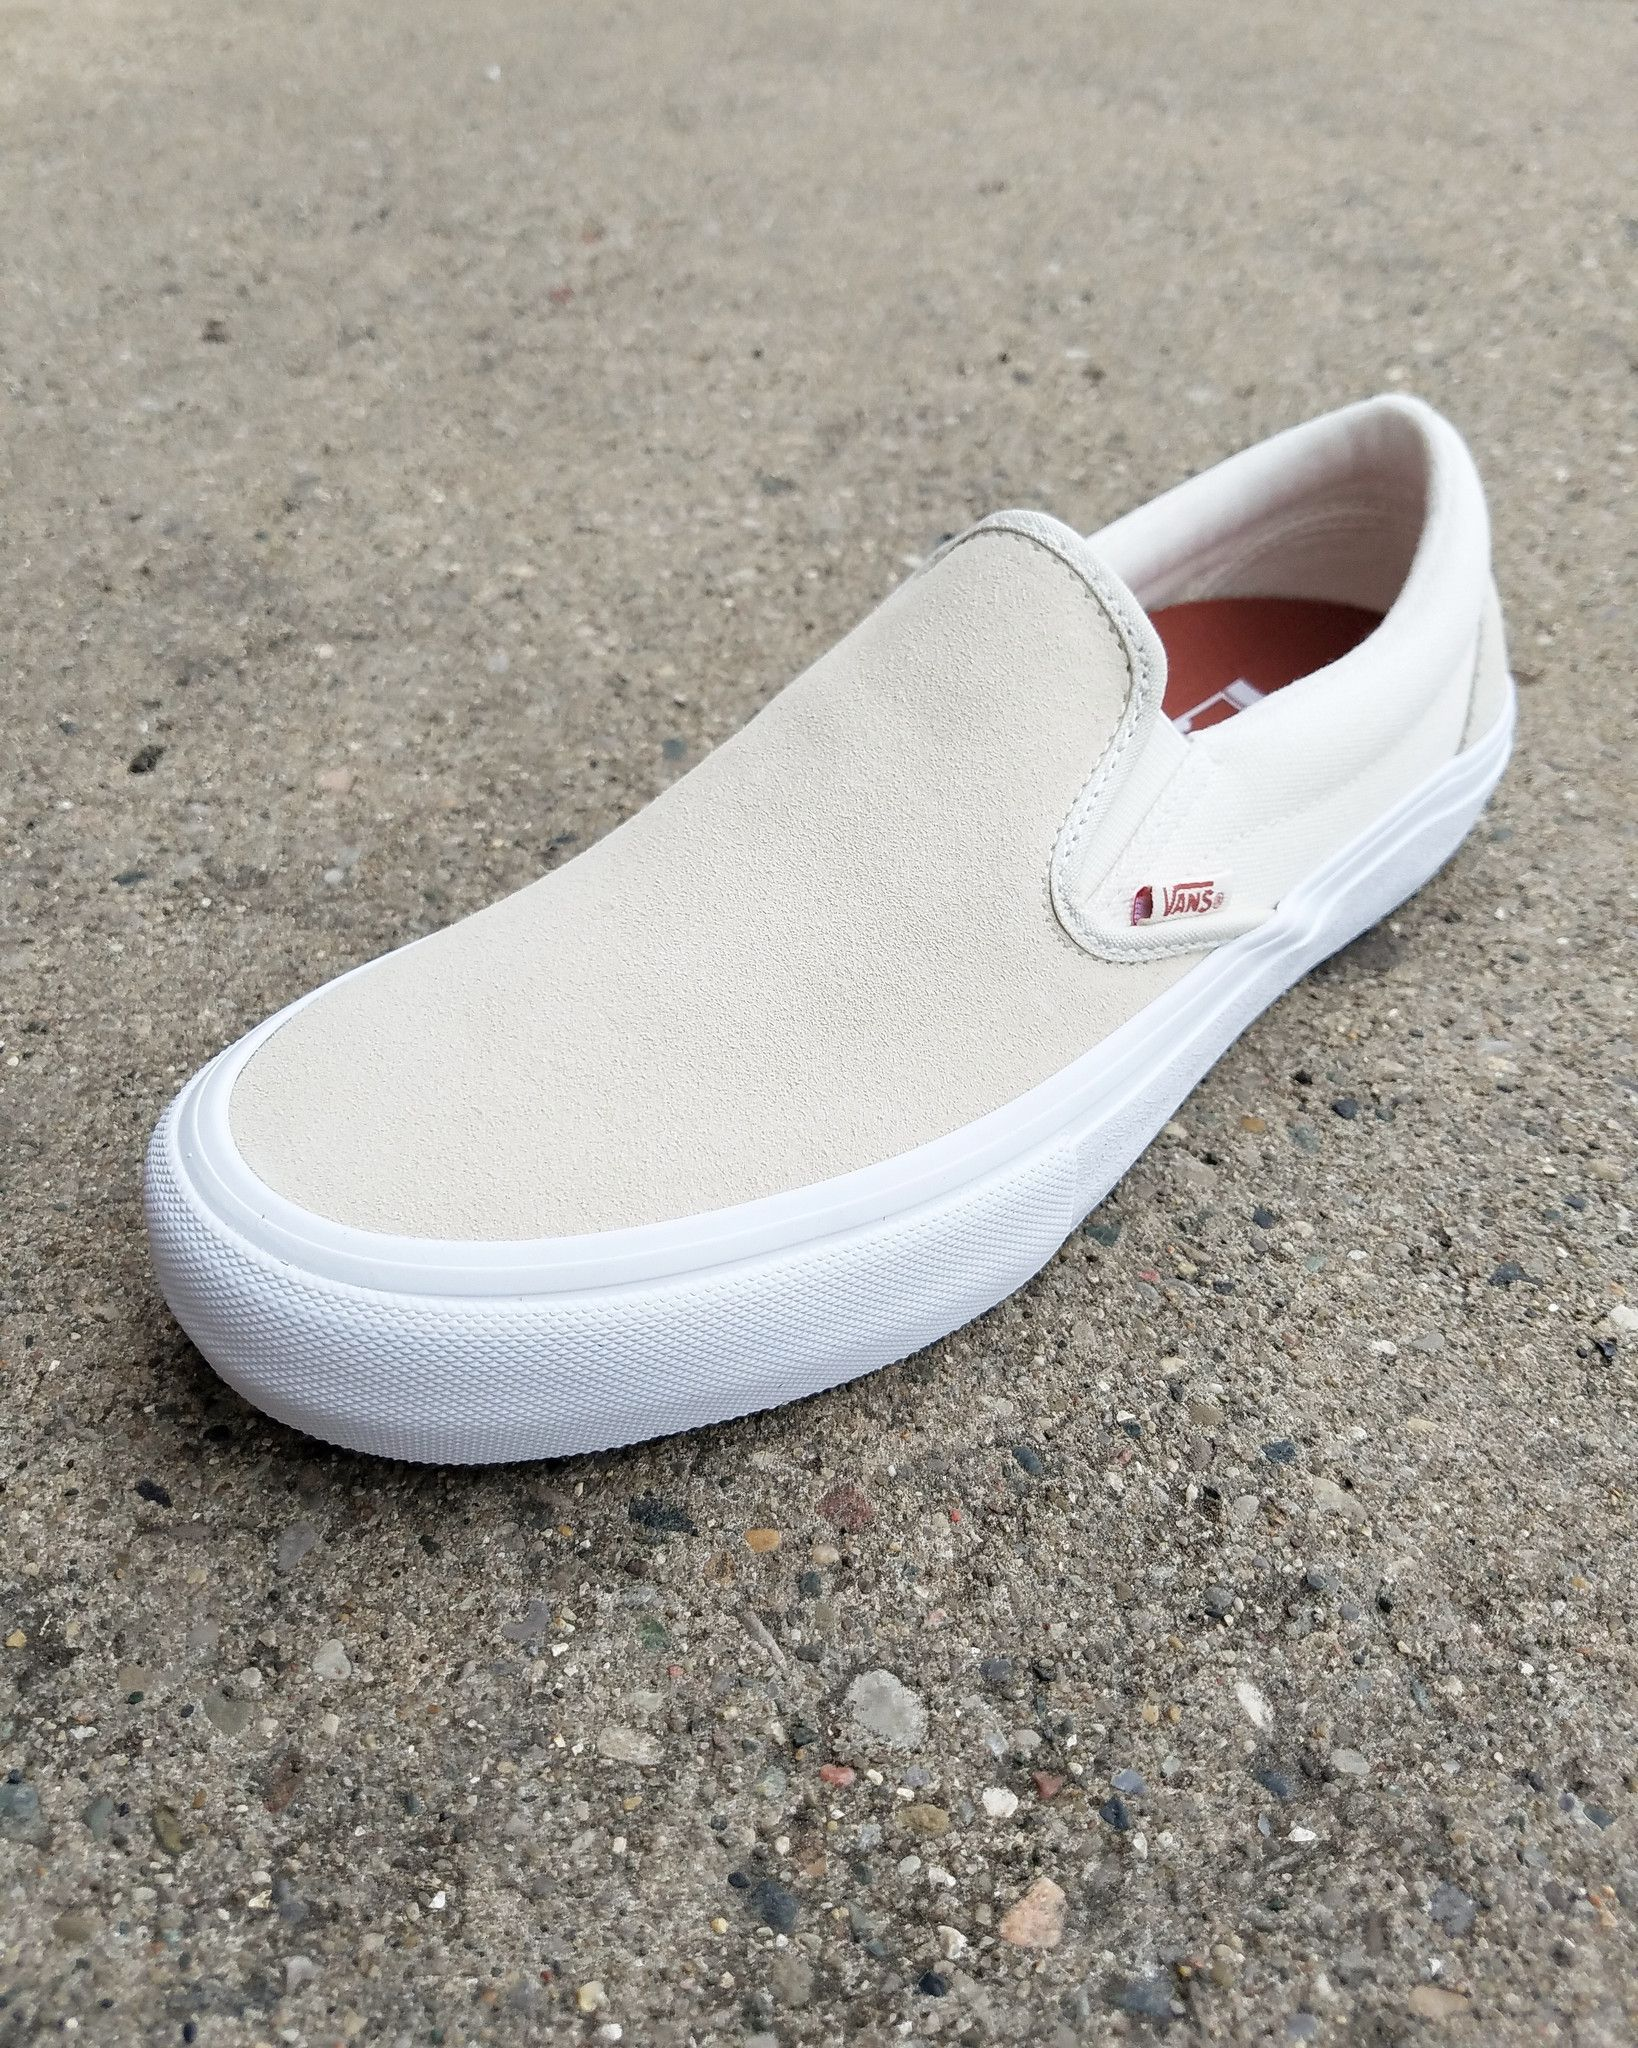 464b8855a6 Vans Slip-On Pro shoes turtledove marshmallow